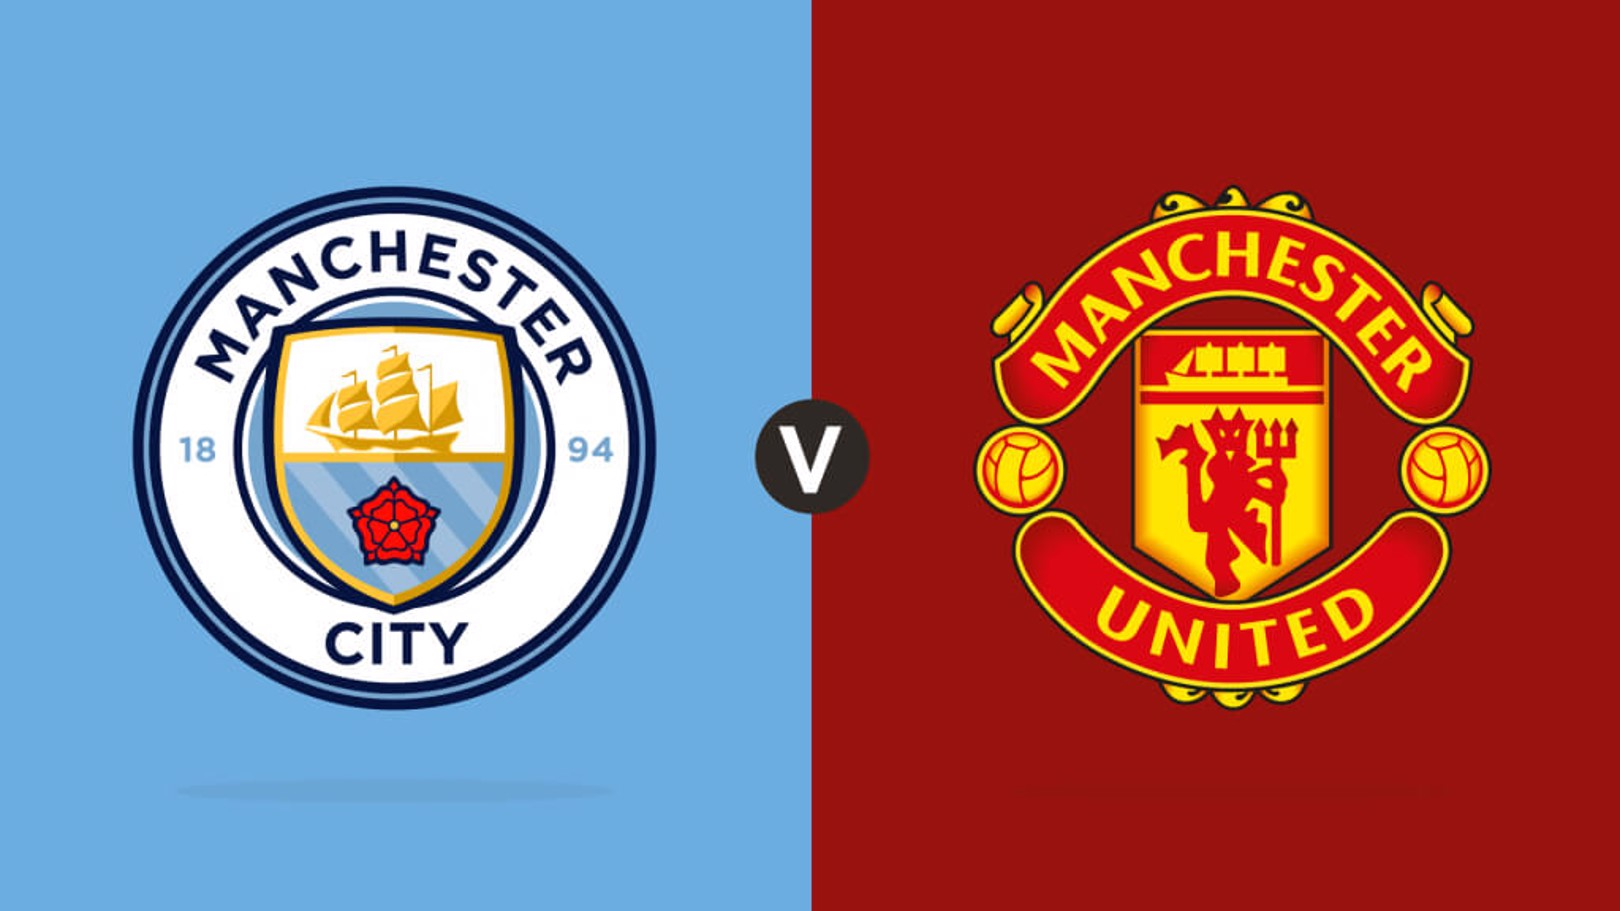 Manchester City v Manchester United LIVE MATCH